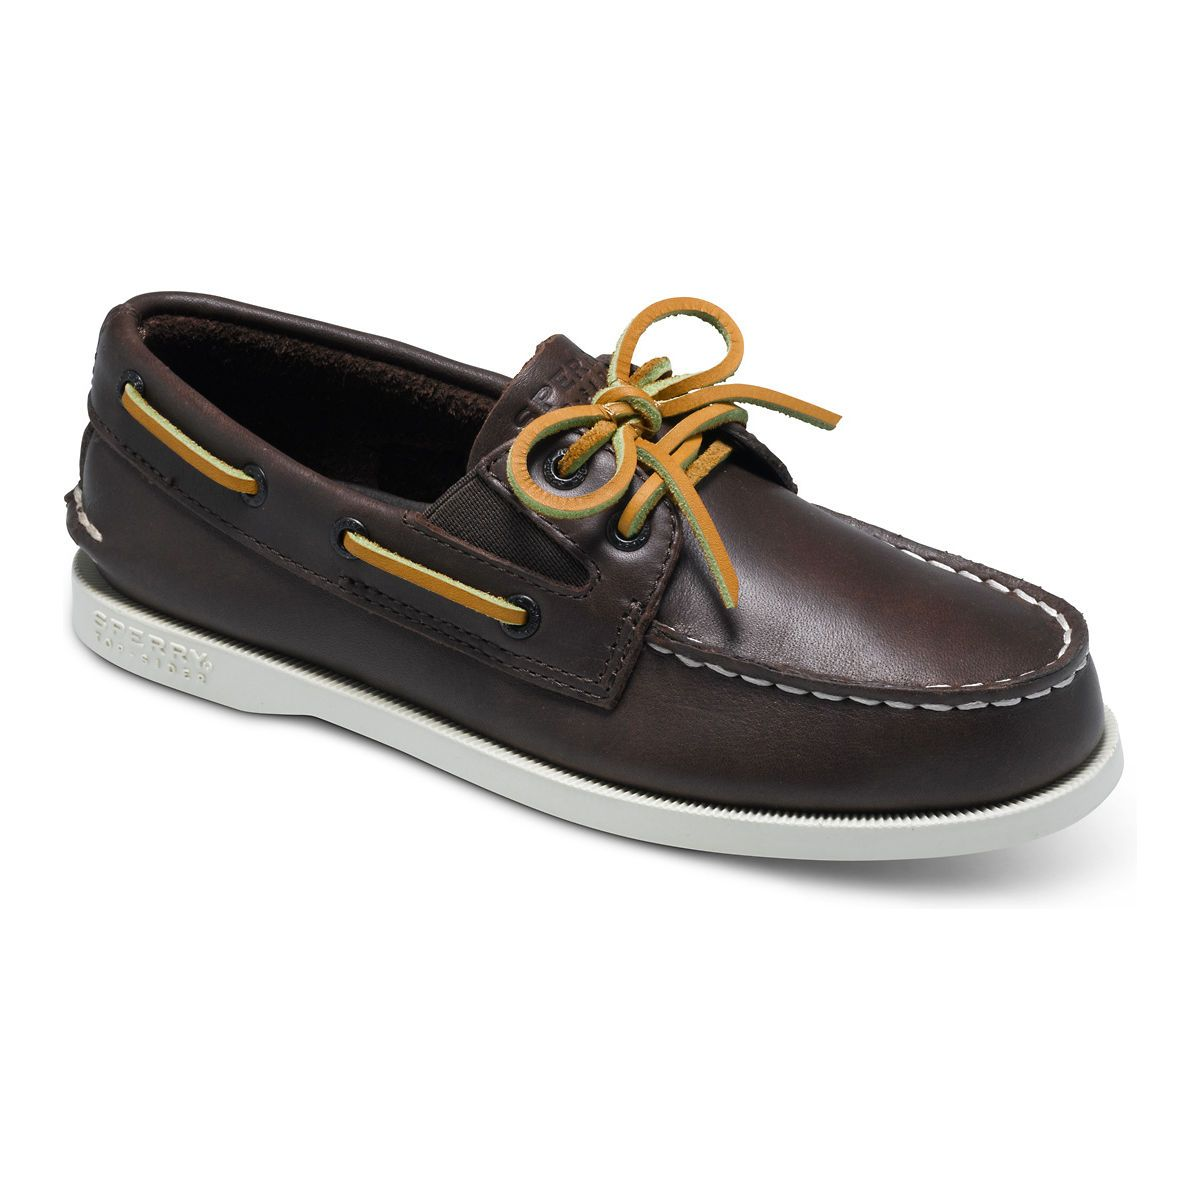 Gore Boat Shoe   Sperry Top-Sider